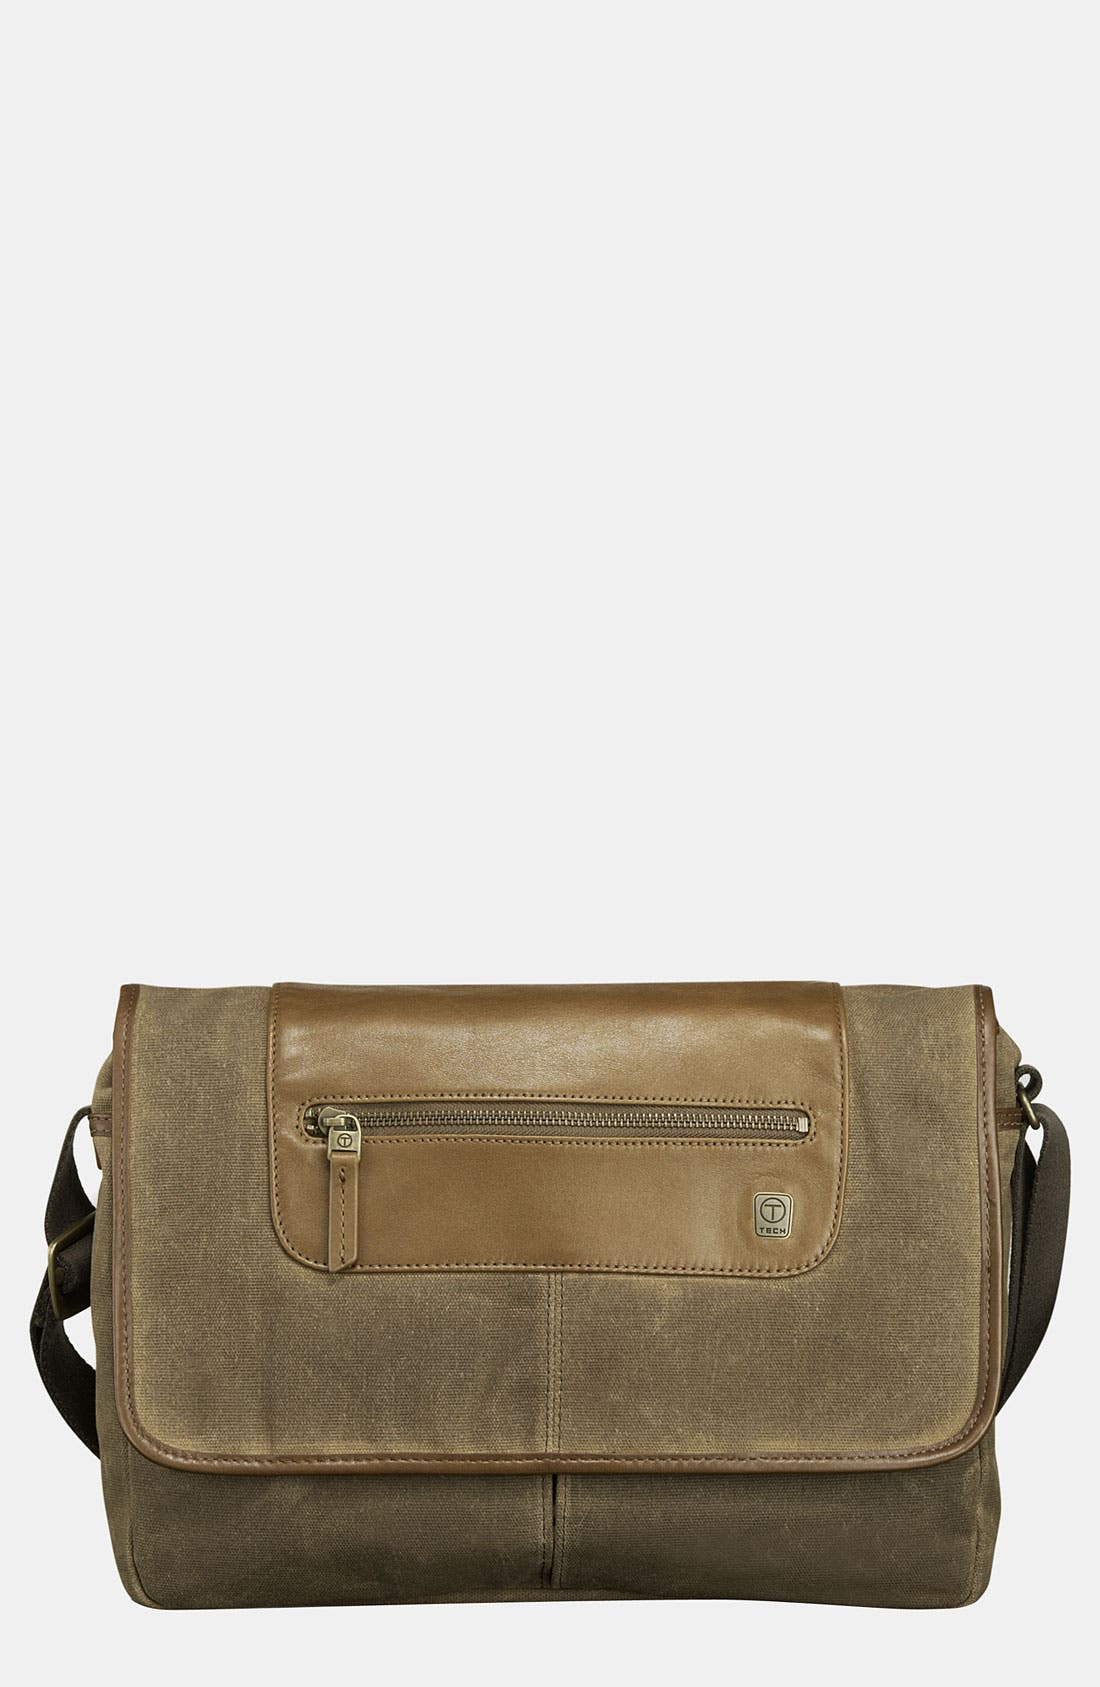 Main Image - T-Tech by Tumi 'Forge Allegheny' Messenger Bag